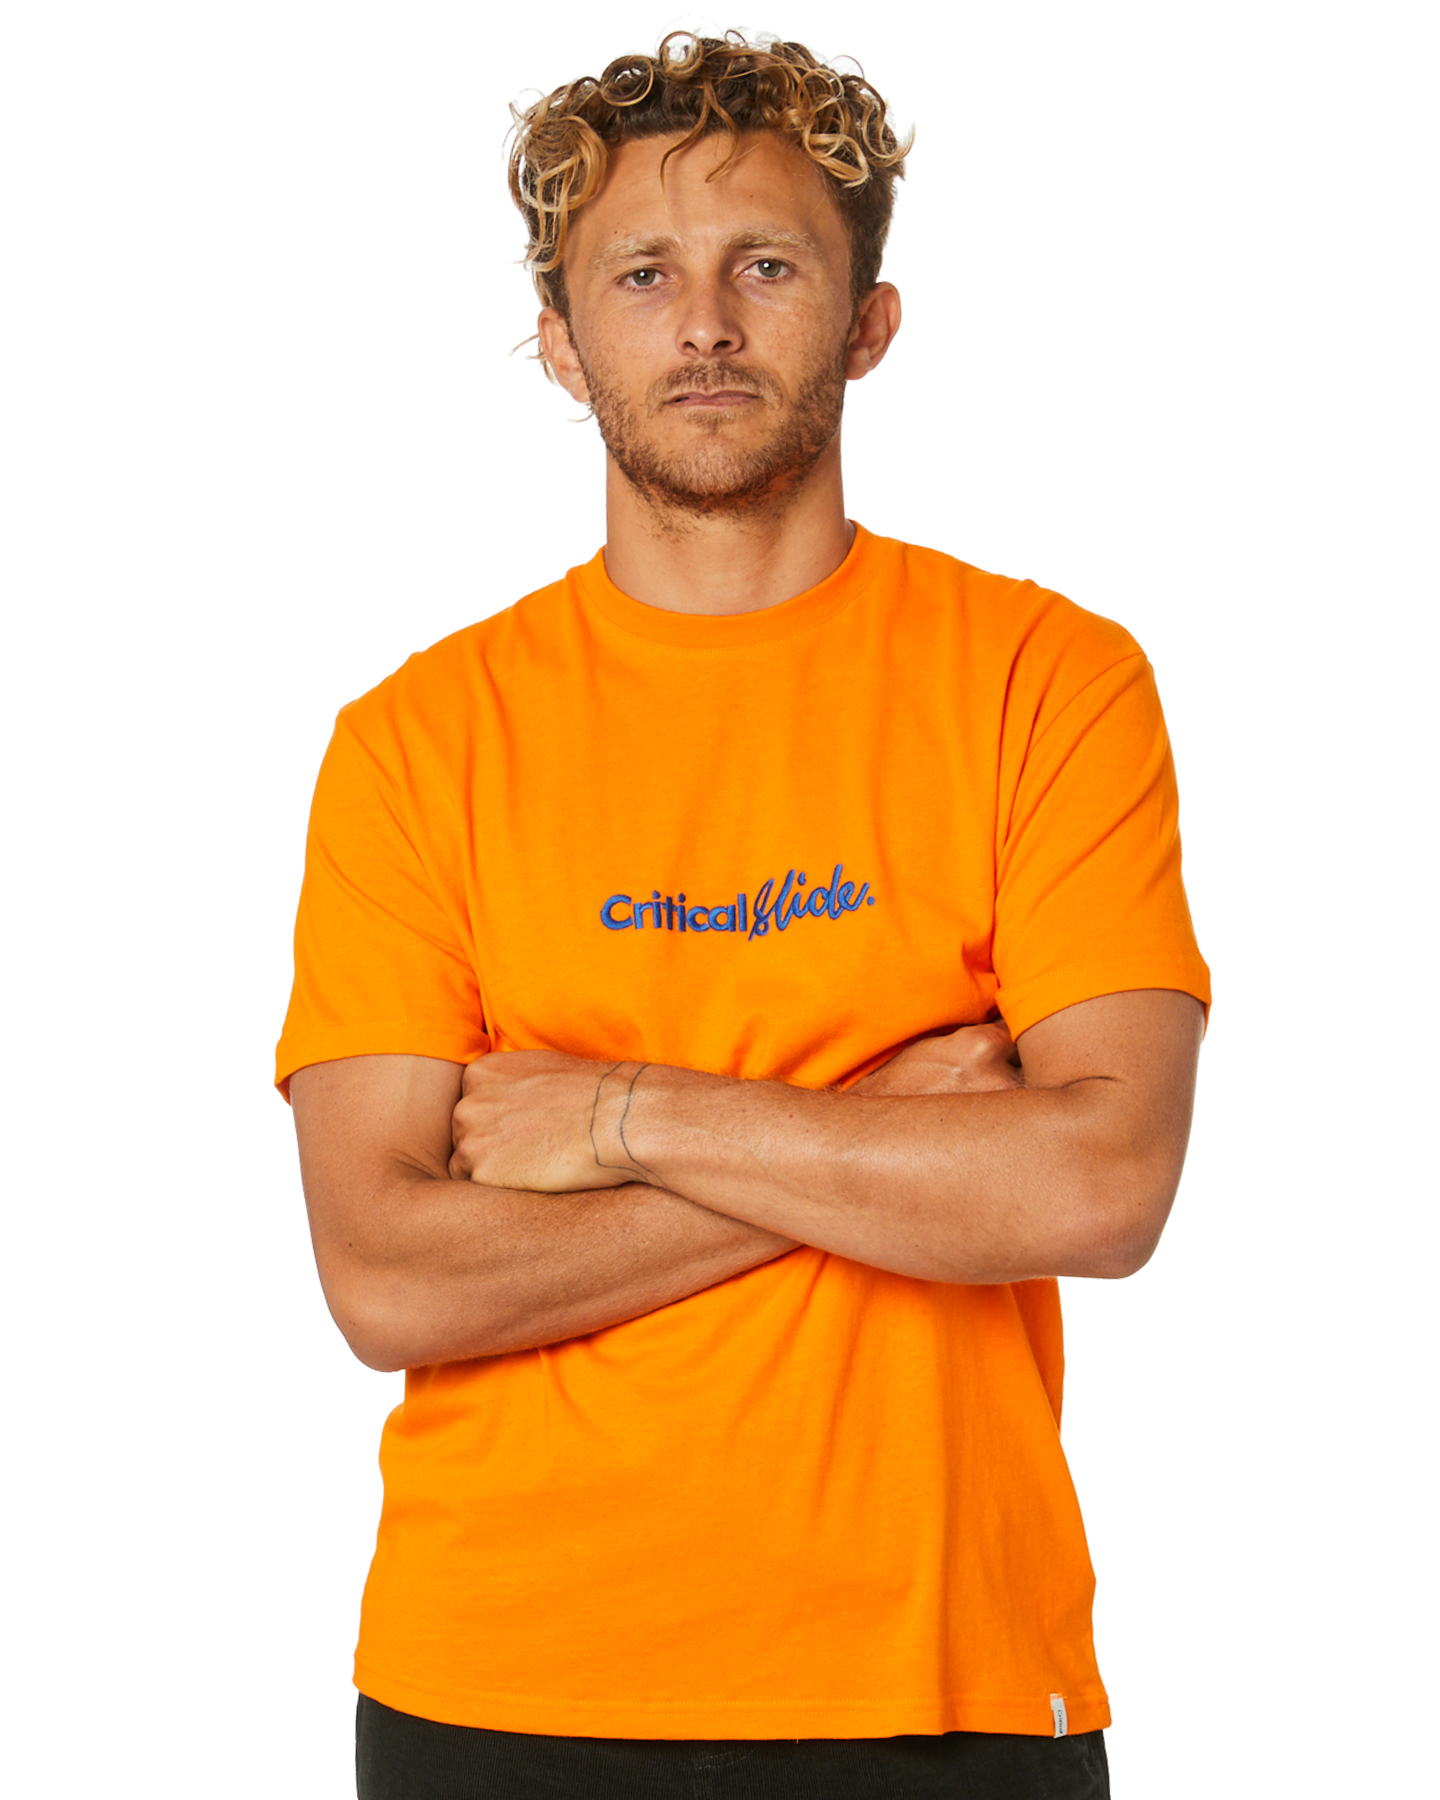 The Critical Slide Society Institute Mens Tee Orange Popsicle